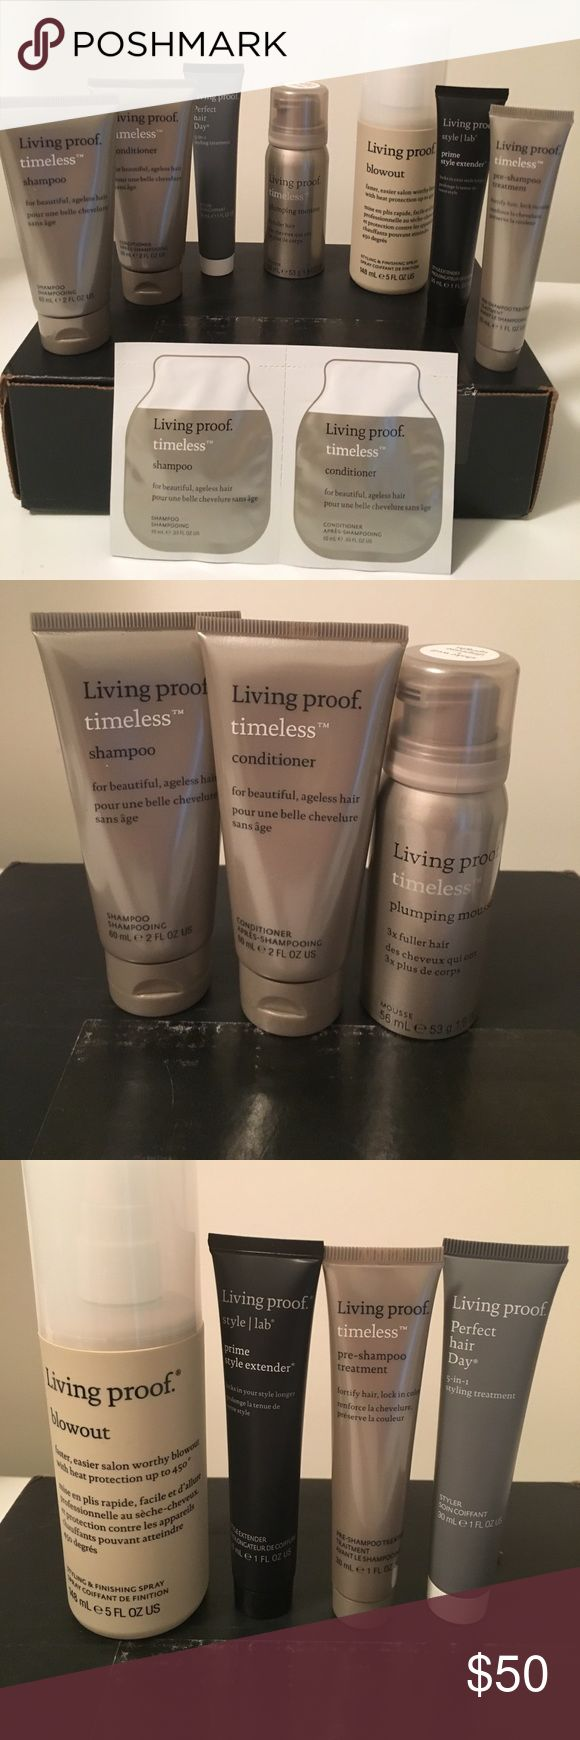 Living Proof timeless 7 piece box set NEW IN BOX Living proof box set. Includes:2 oz timeless shampoo, 2 oz timeless conditioner, 1.9 oz timeless plumping mousse, 5 oz blowout, 1 oz style lab prime style extender, 1 oz perfect hair day and 1 oz timeless pre shampoo treatment. Also included as a BONUS .33 oz timeless shampoo and conditioner.  Comes from a smoke free pet free home. Makeup